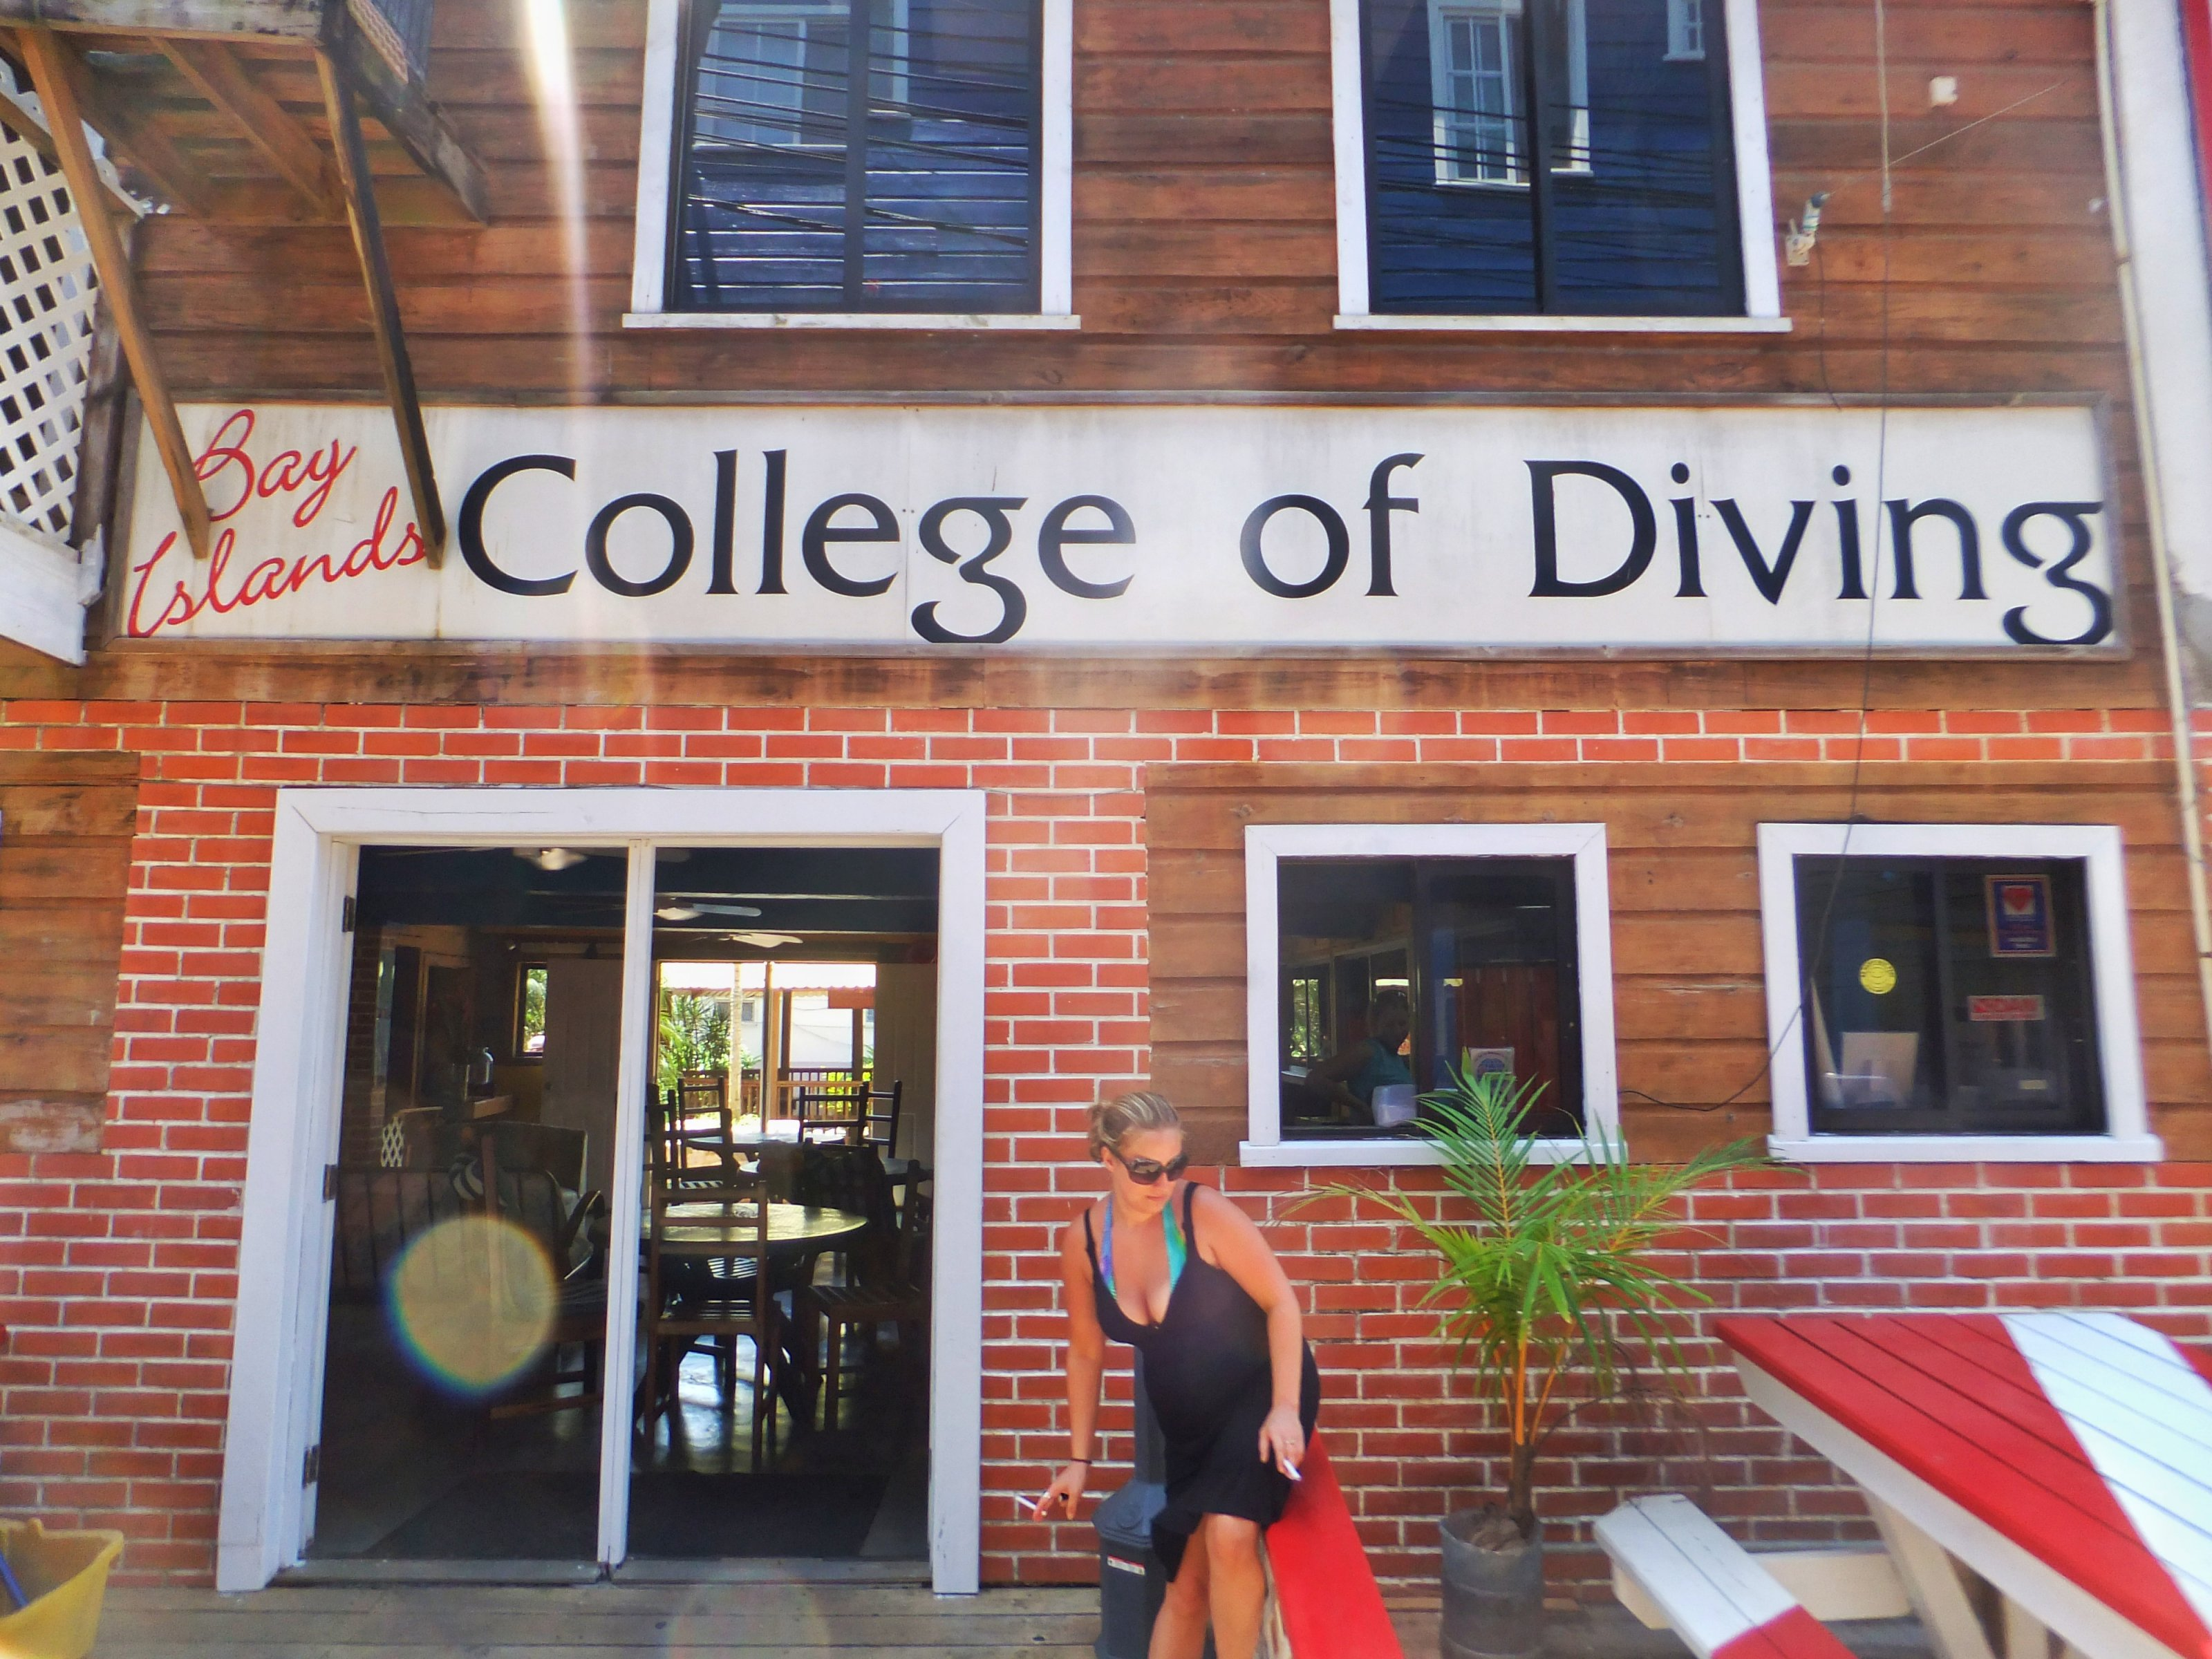 Bay Islands College of Diving